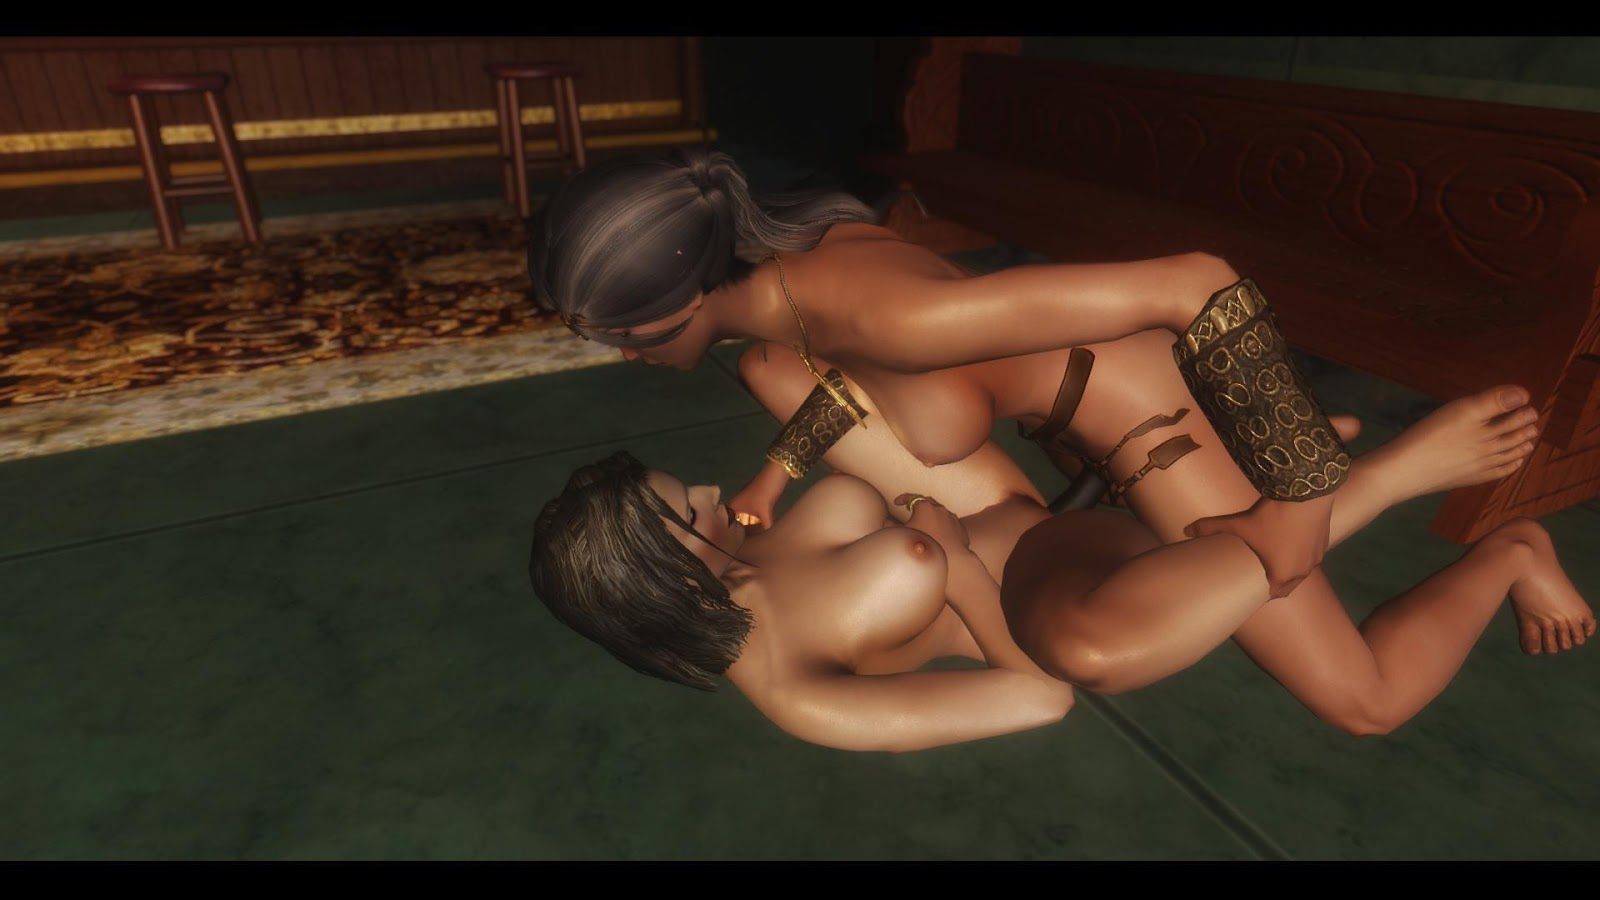 Loverslab skyrim adult mods.